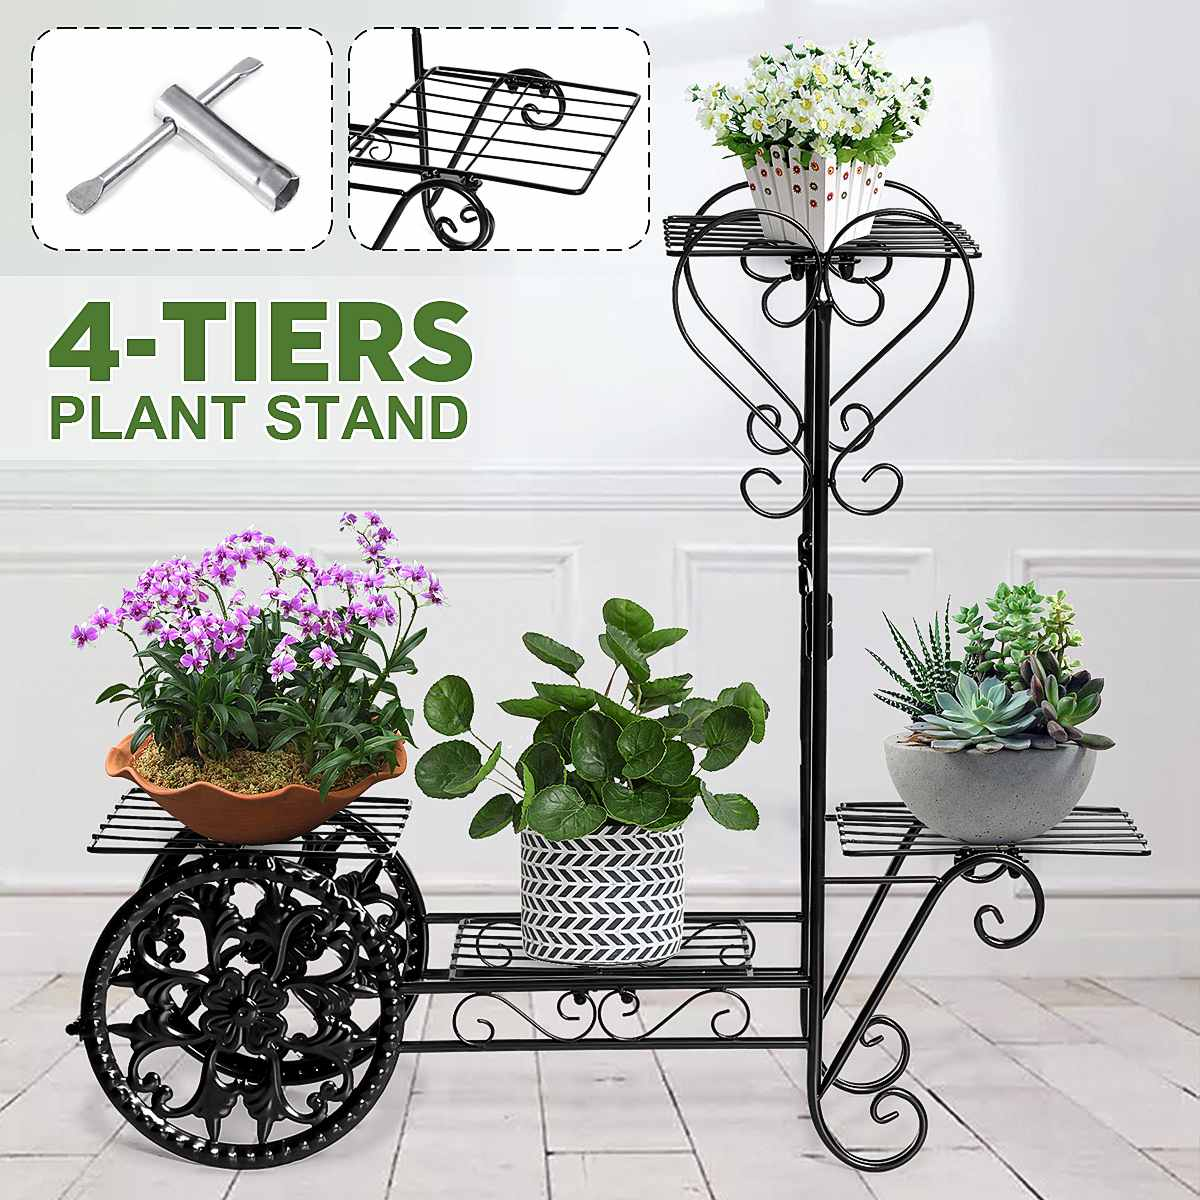 4 Spotted Metal Plant Stand Flower Rack Pot Storage Rack Shelf Display Shelf Holder Home Indoor Outdoors Decor Garden Balcony